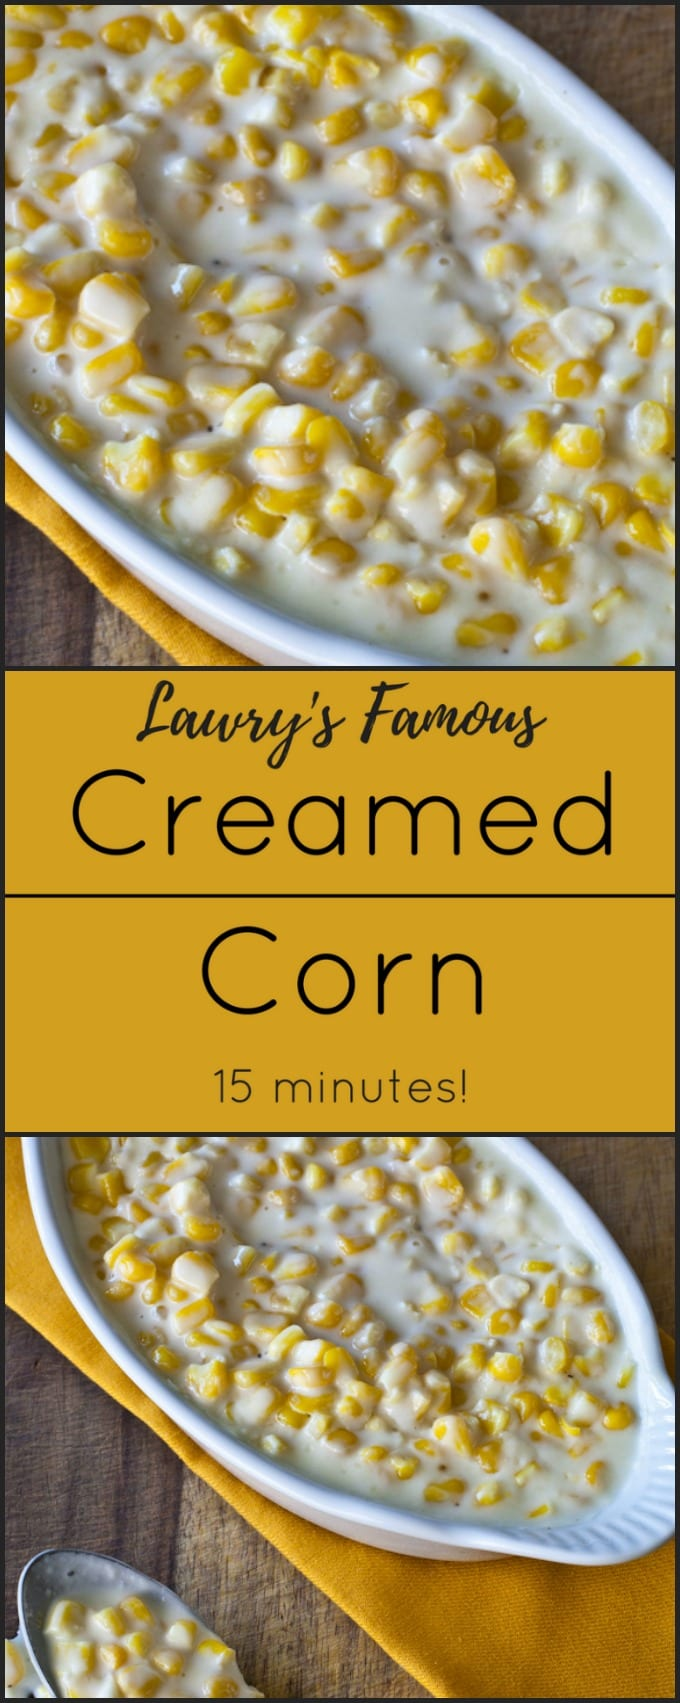 Lawry's Classic Creamed Corn is the perfect side dish to any meal!